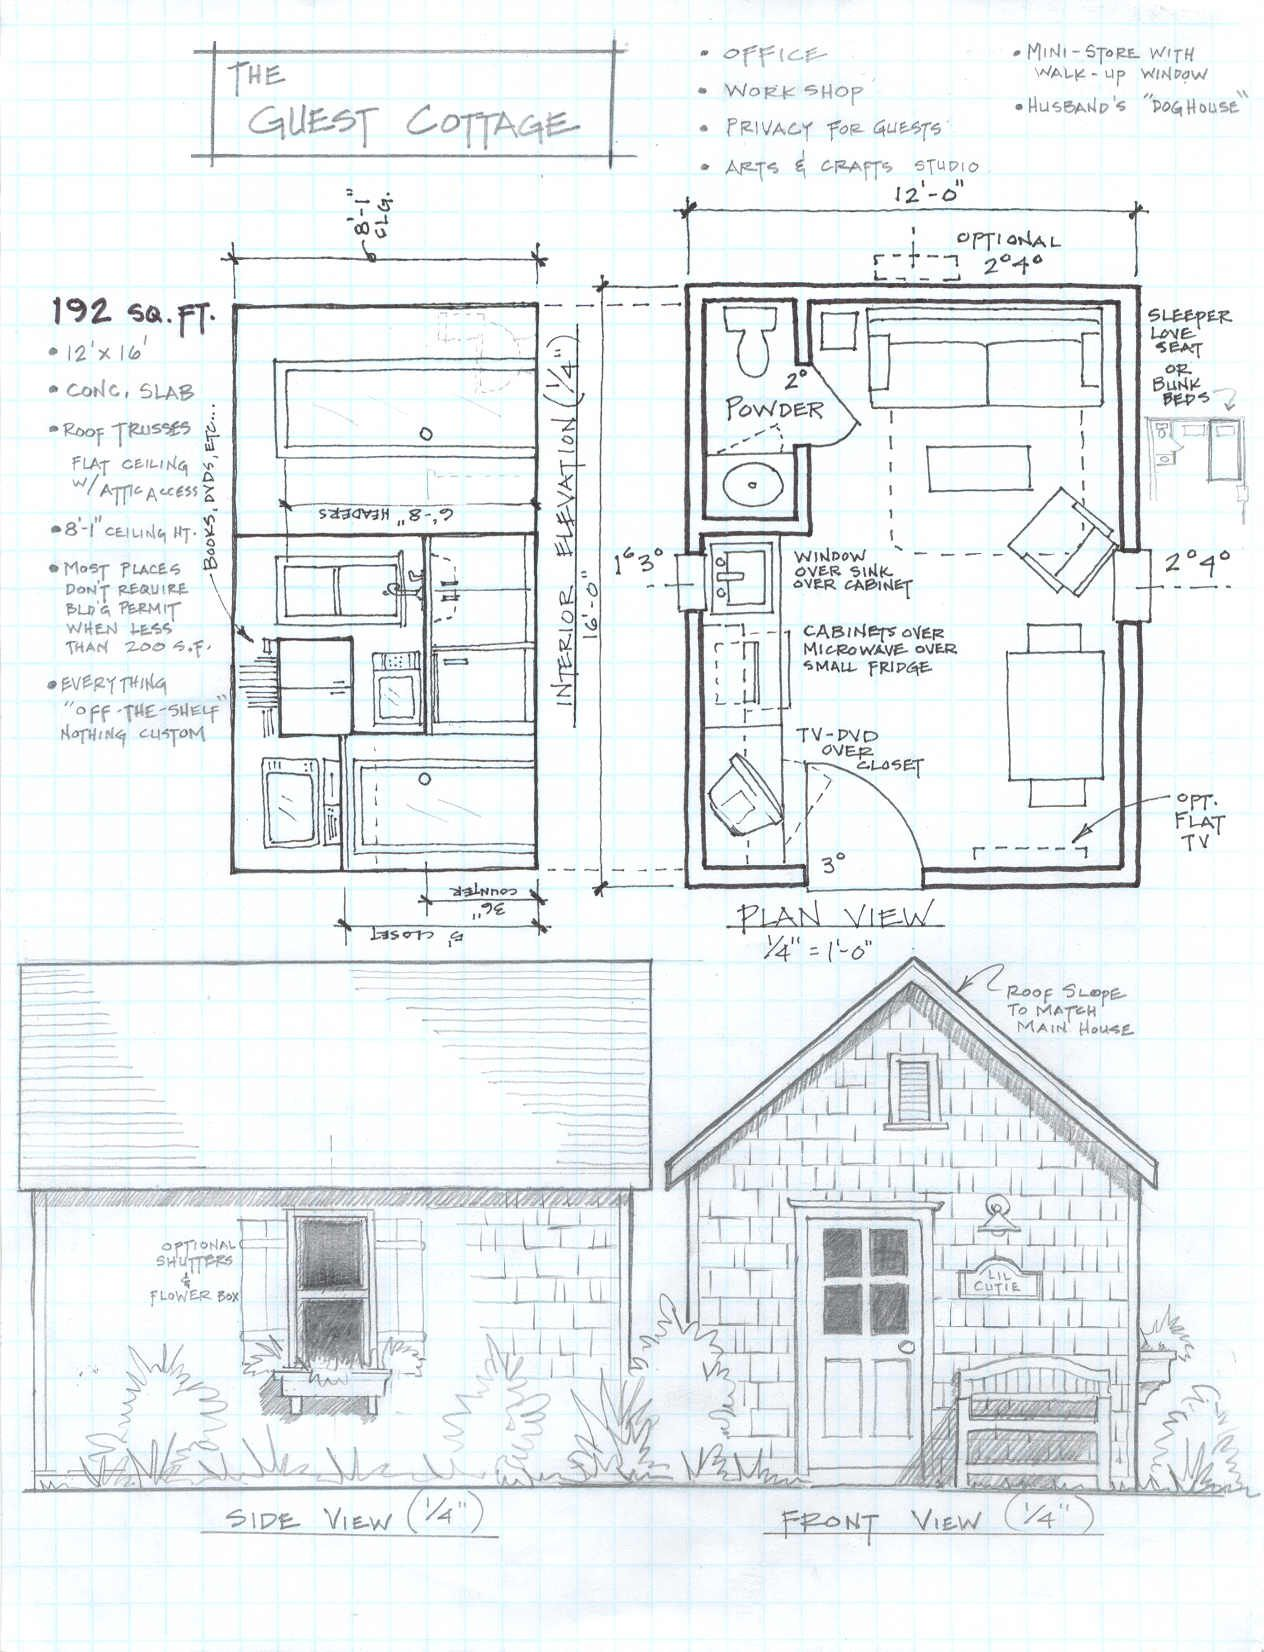 tiny home designs free ideasidea find this pin and more on architectural ideas for our dream home by bryandkt free small